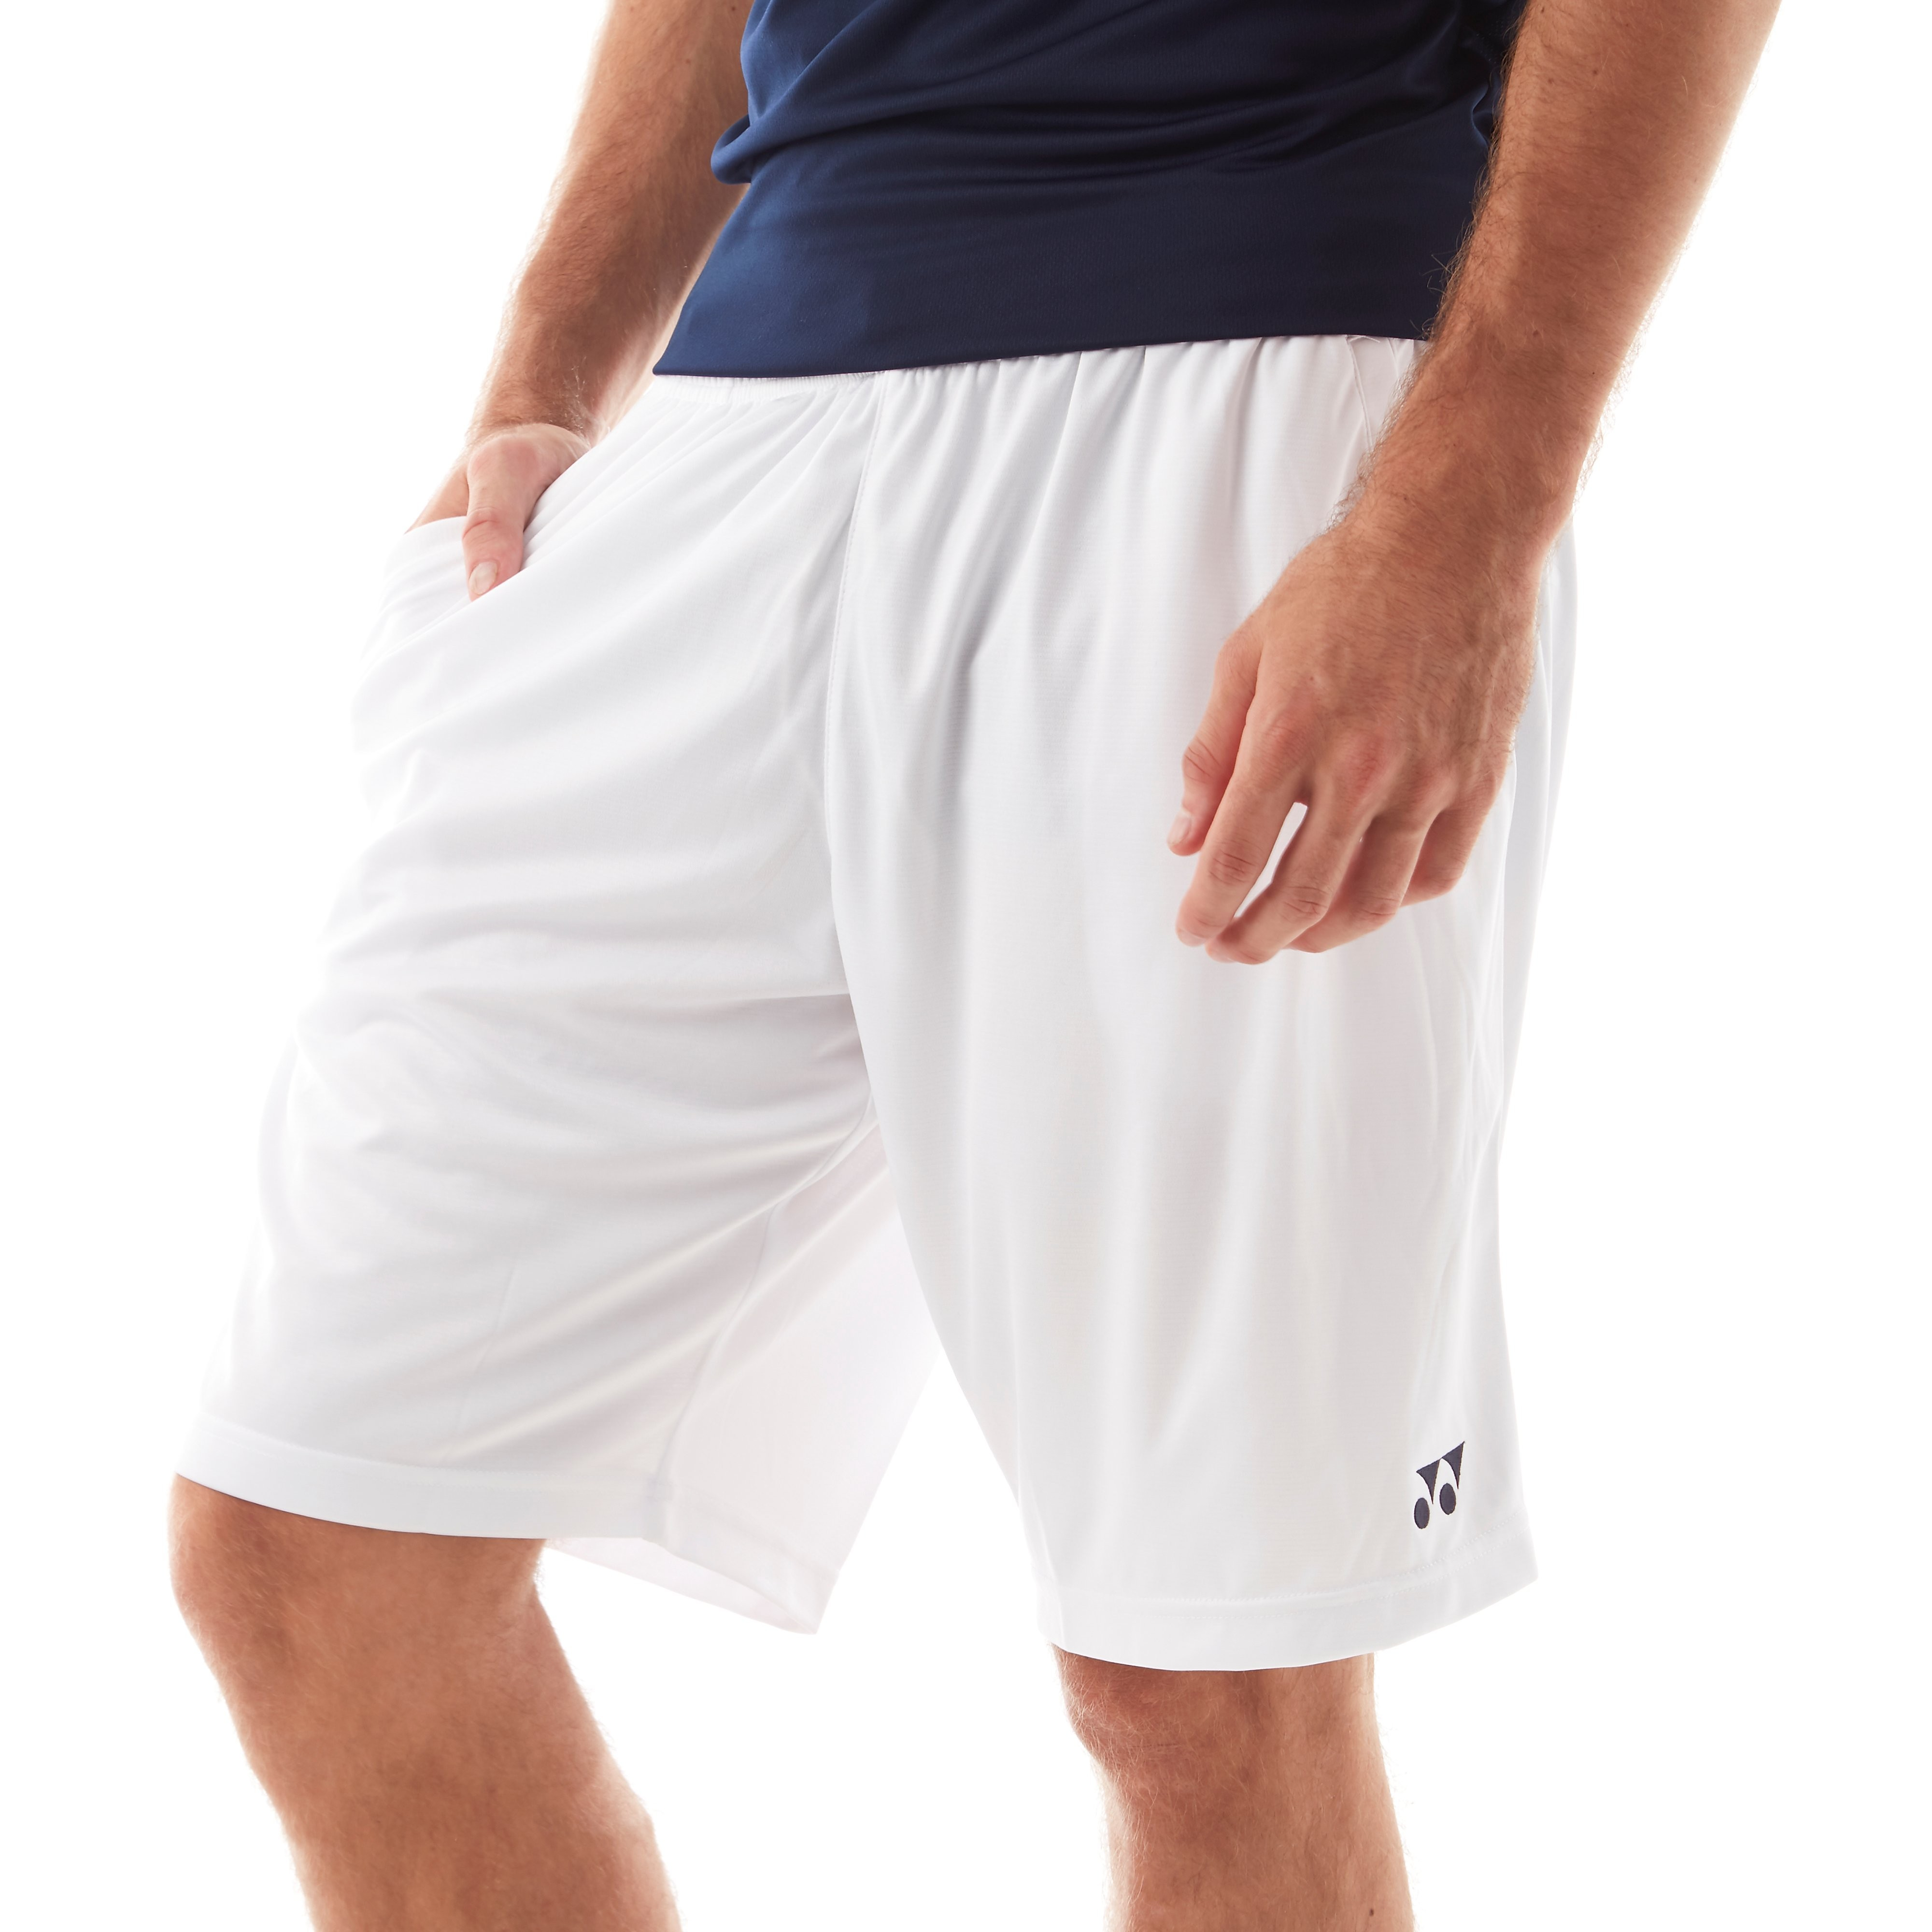 Yonex Men's Training Shorts